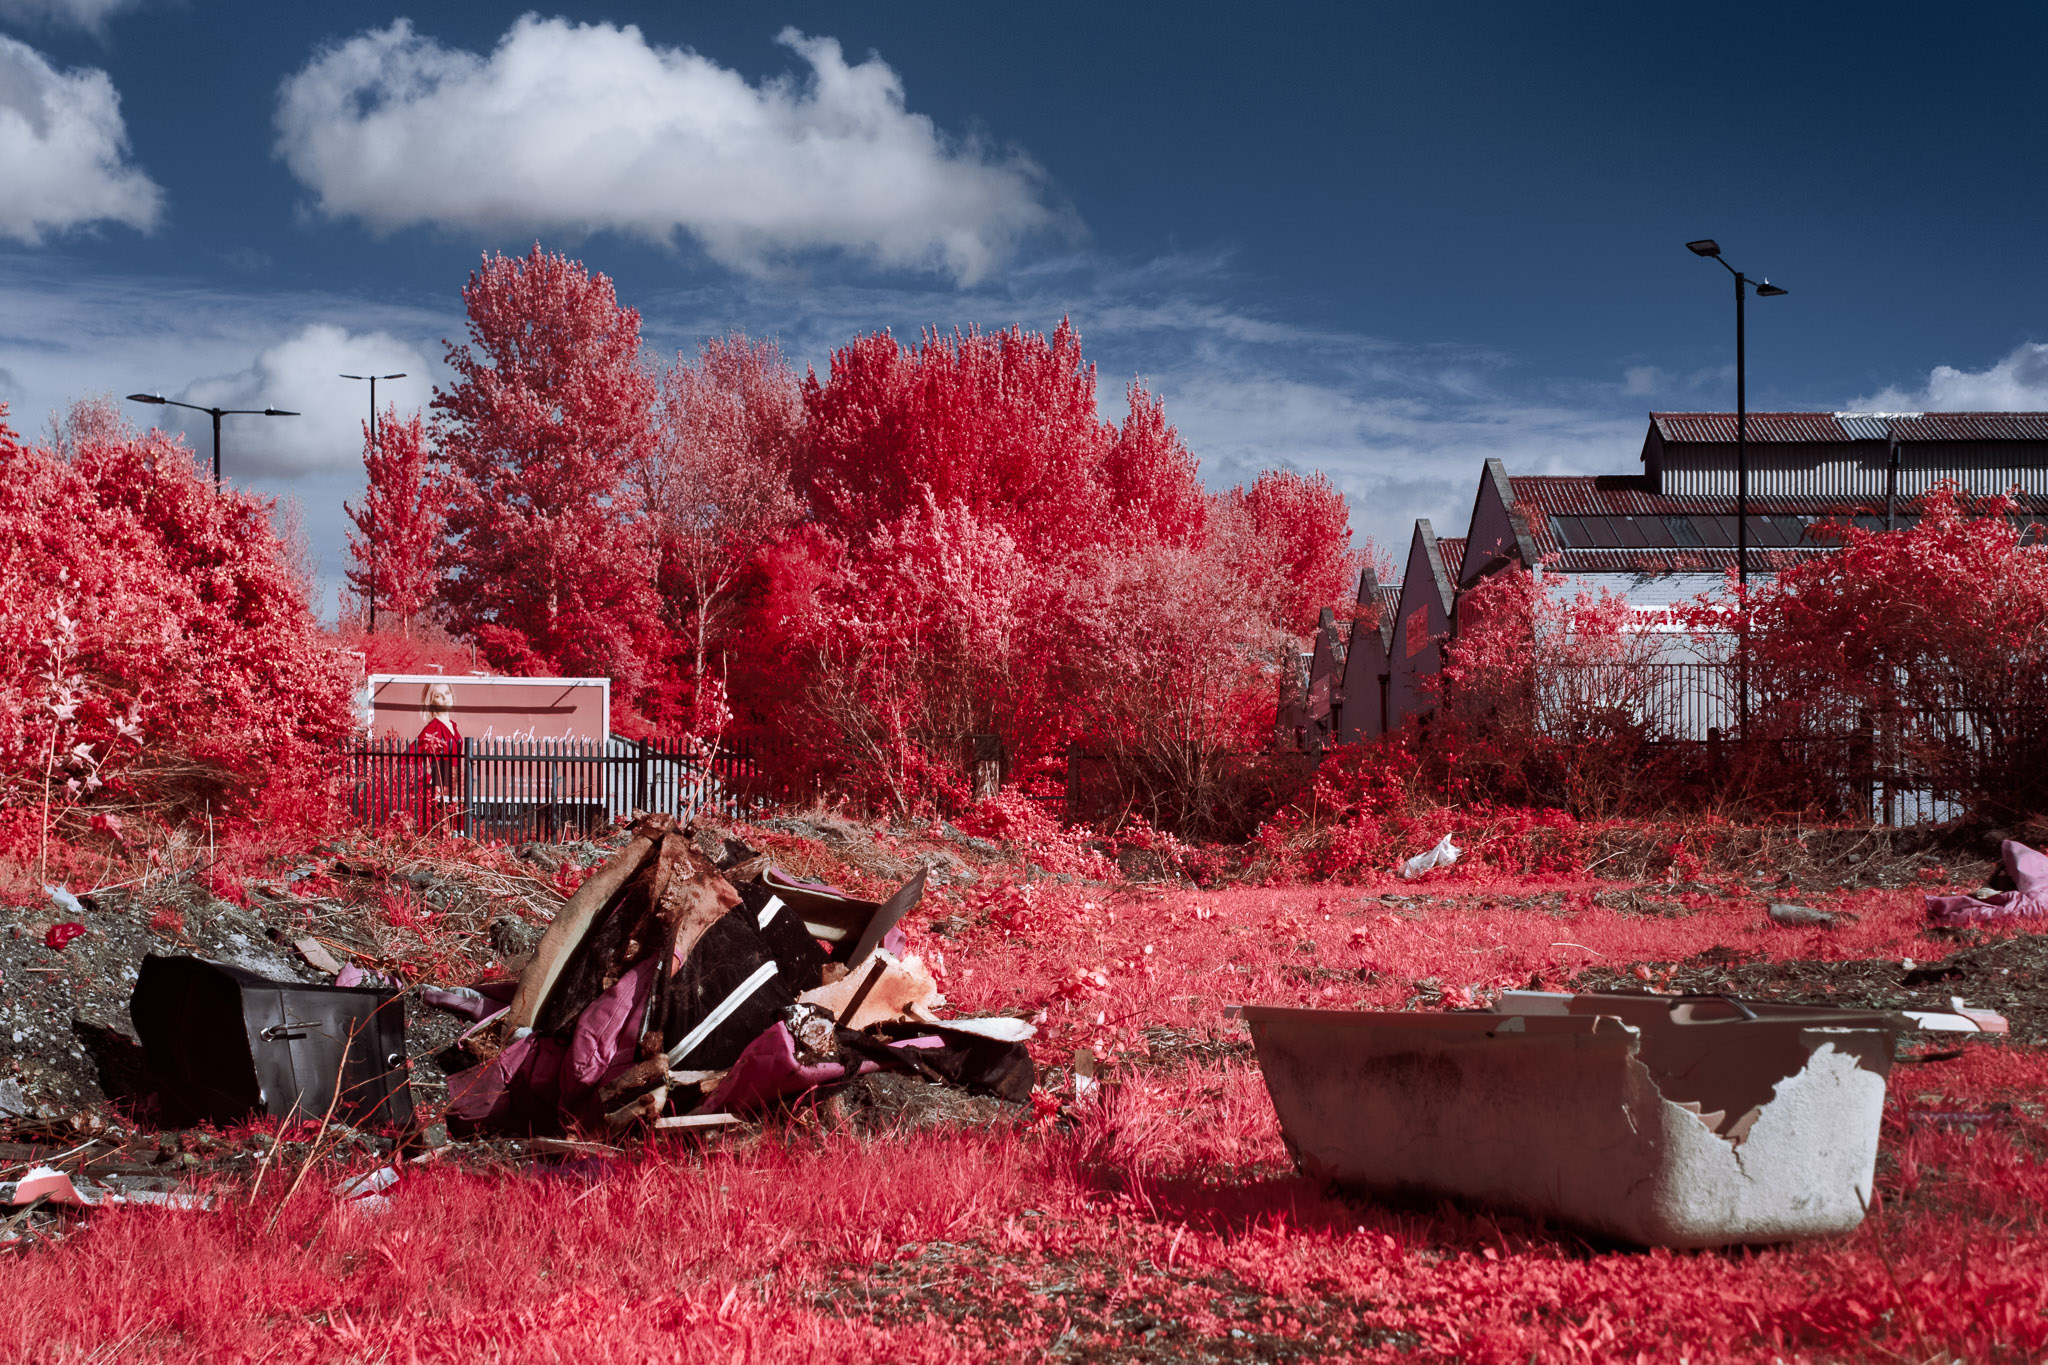 Kodak EIR Colour Infrared, Edgelands, Wasteland, Out of sight,  Bathtub ©Jonny Sutton